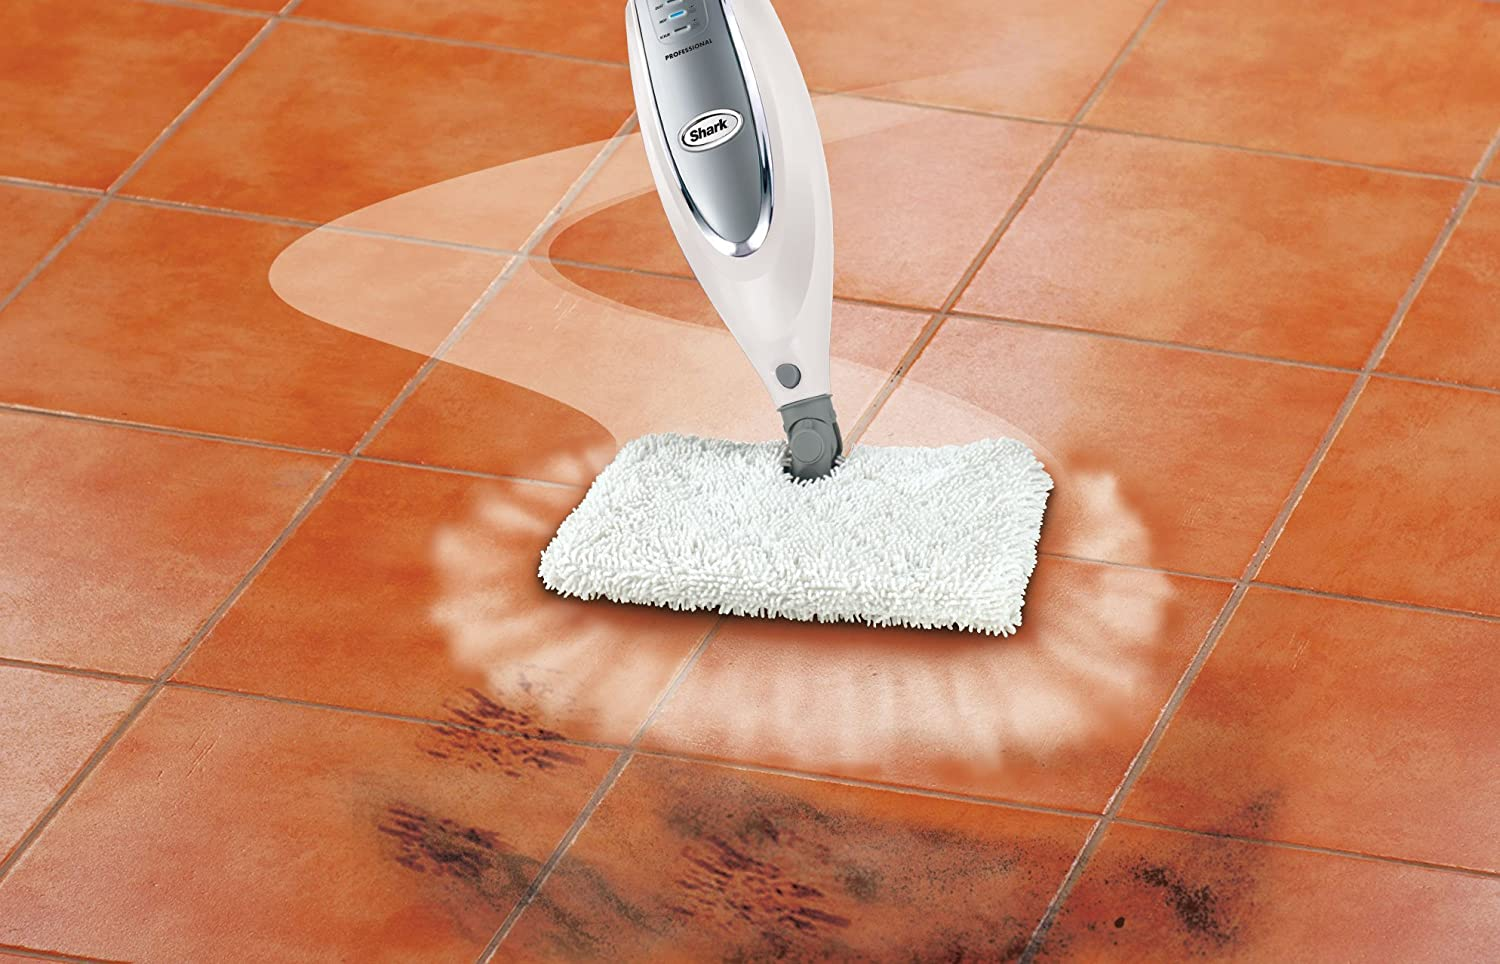 shark tile floor cleaner choice image